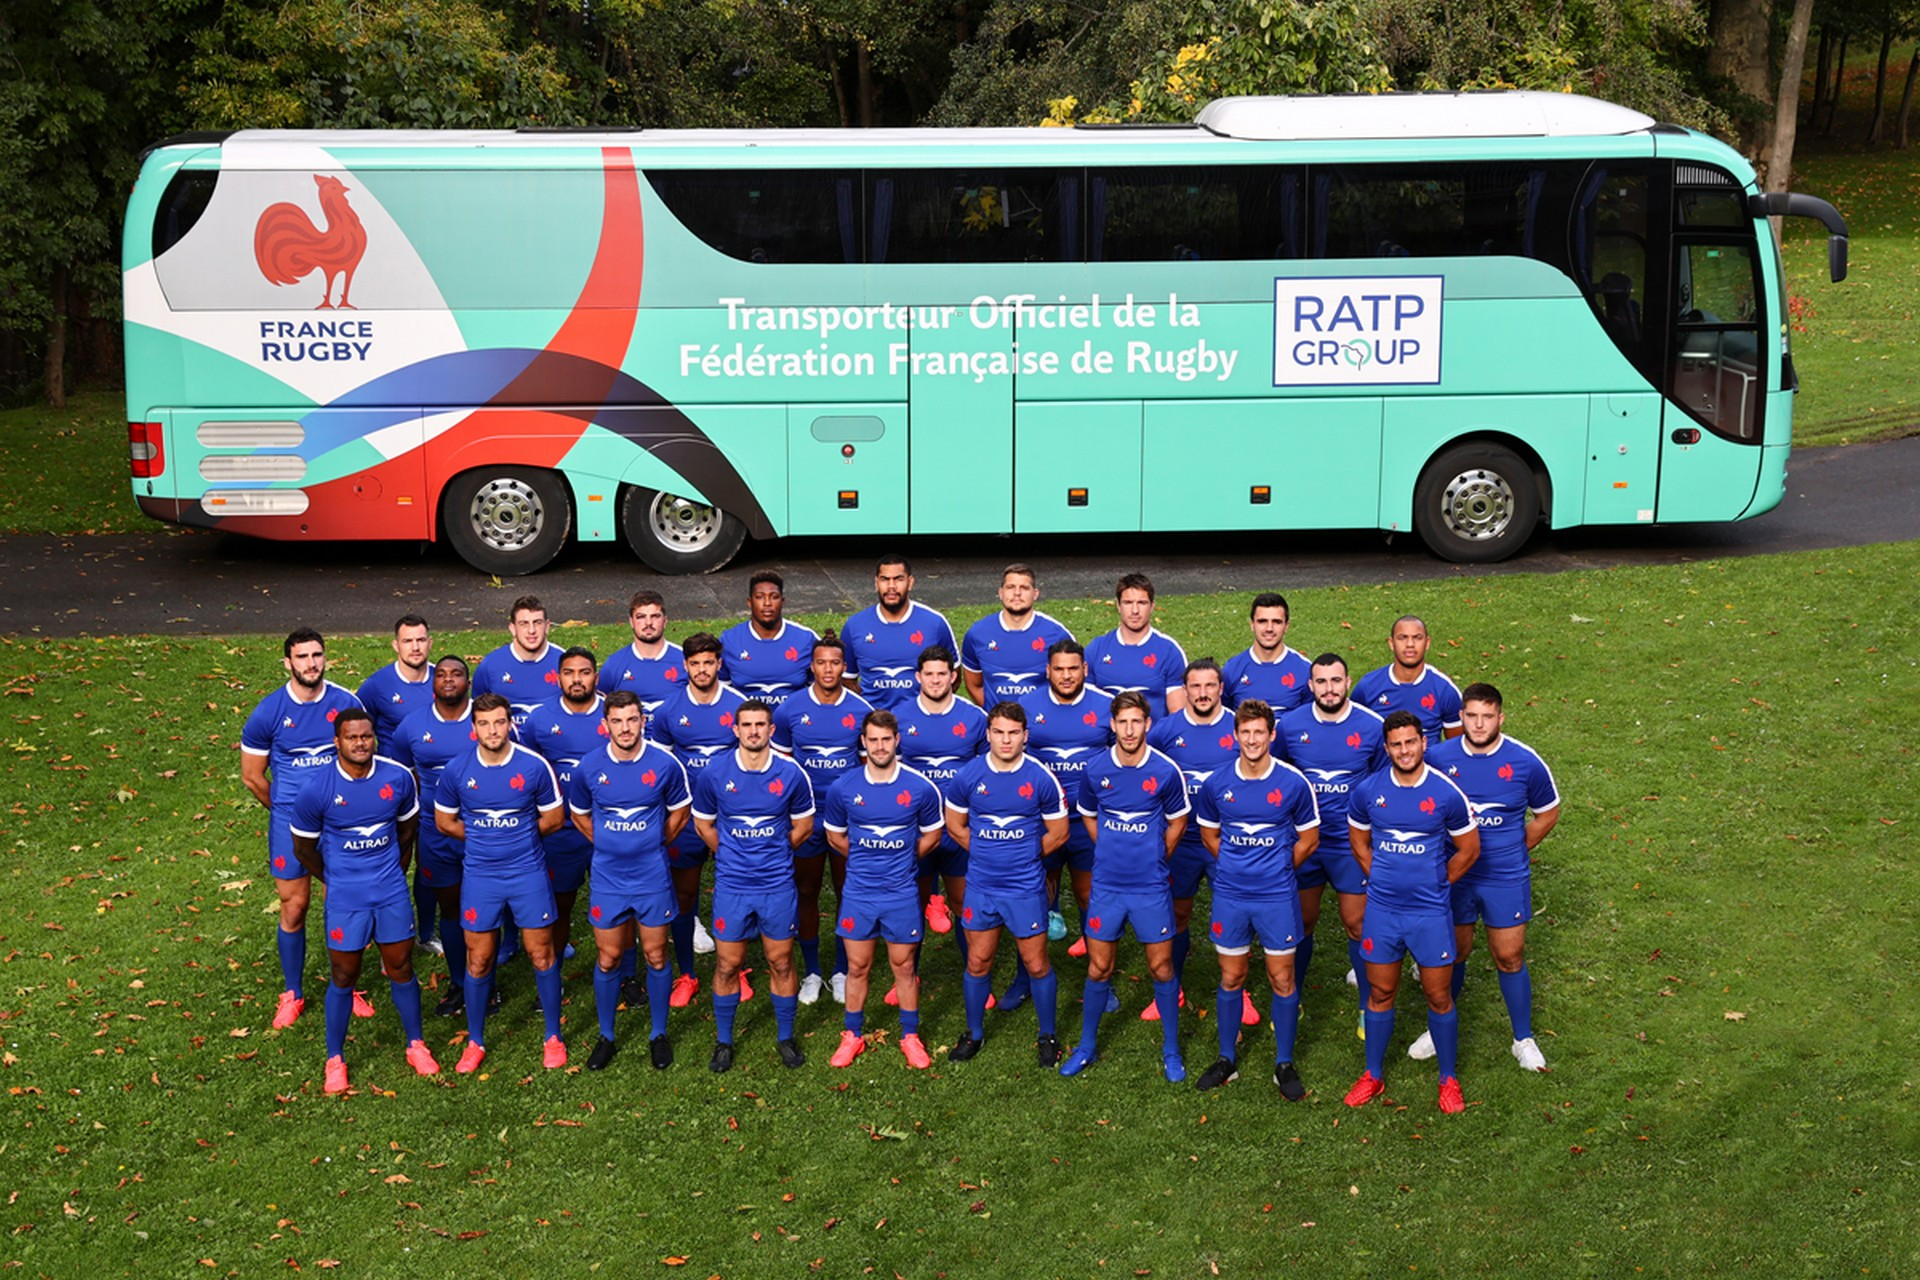 RATP x Rugby 2020